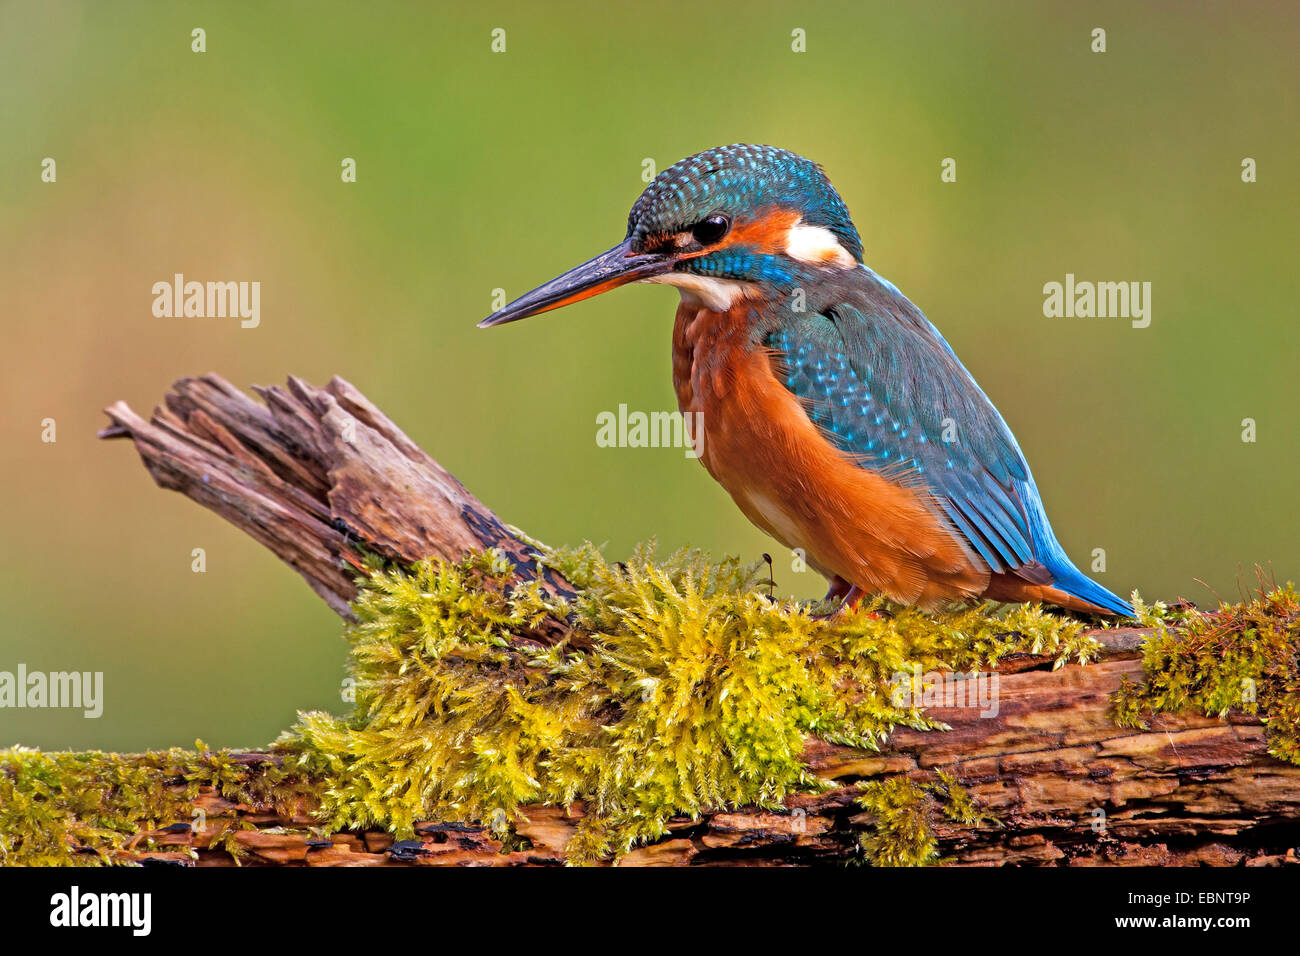 river kingfisher (Alcedo atthis), on its lookout, Switzerland, Rheineck - Stock Image